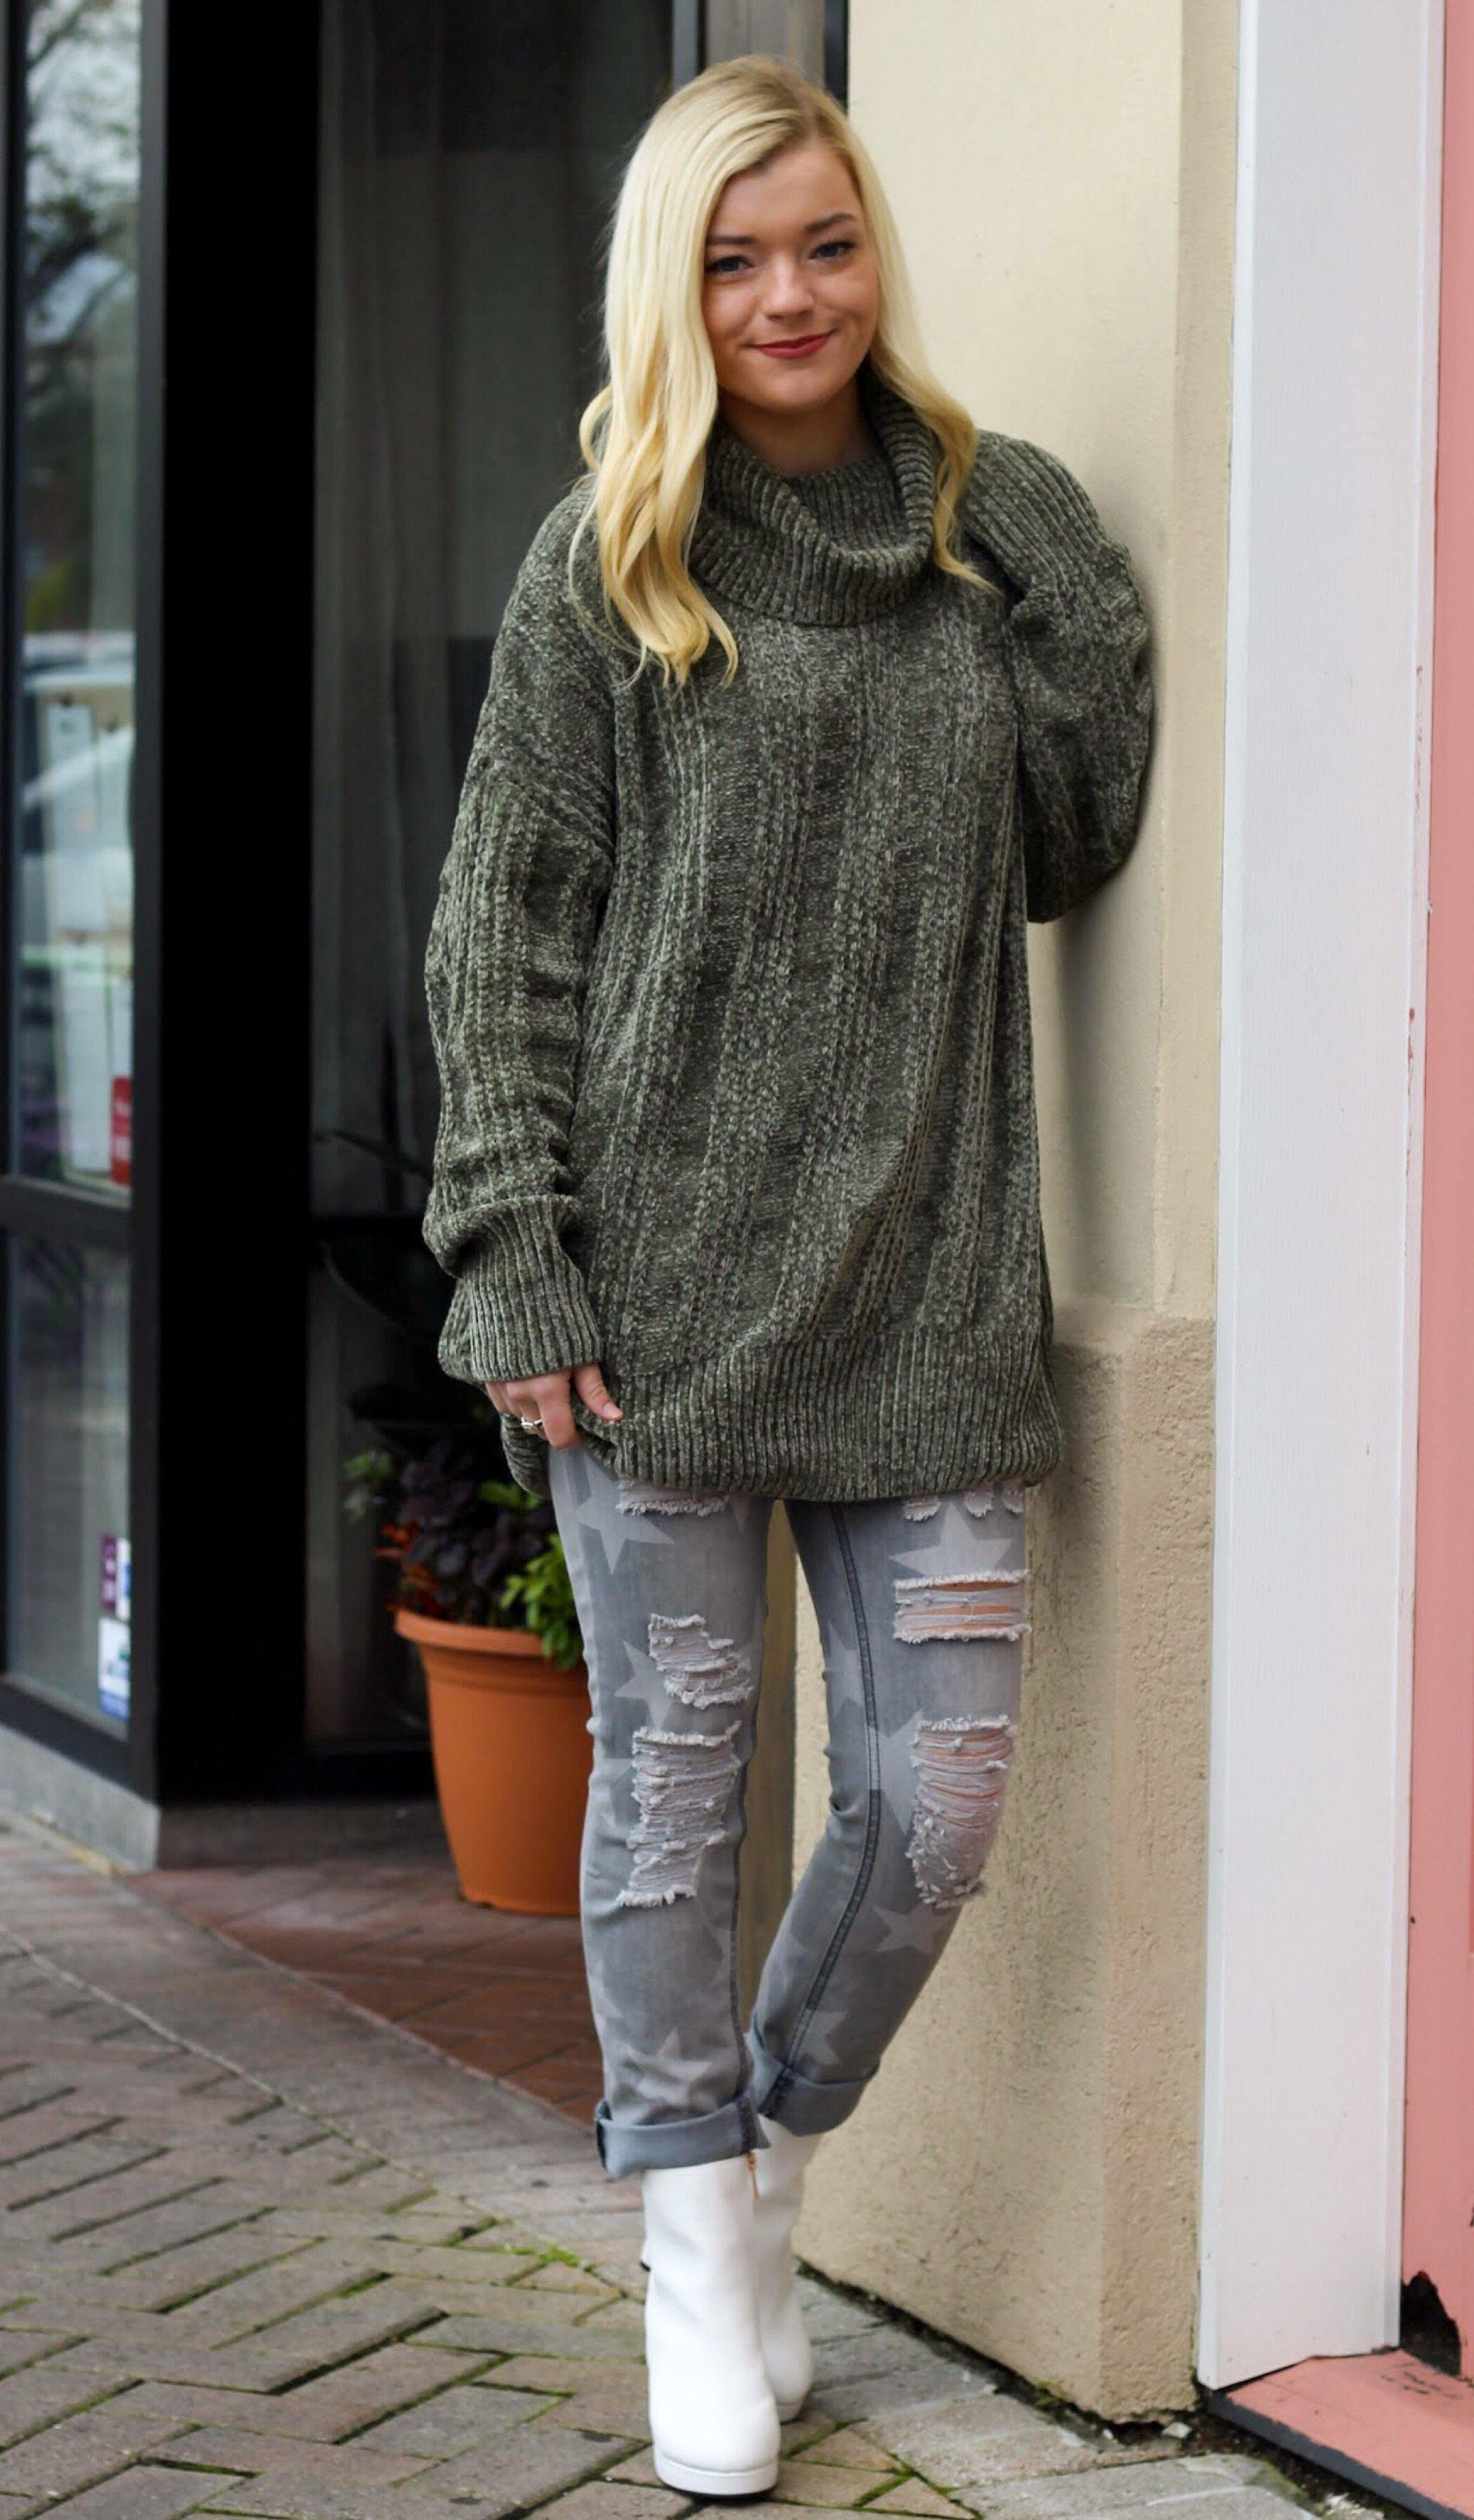 KHRISTIAN OVERSIZED SWEATER - elbie boutique, LLC